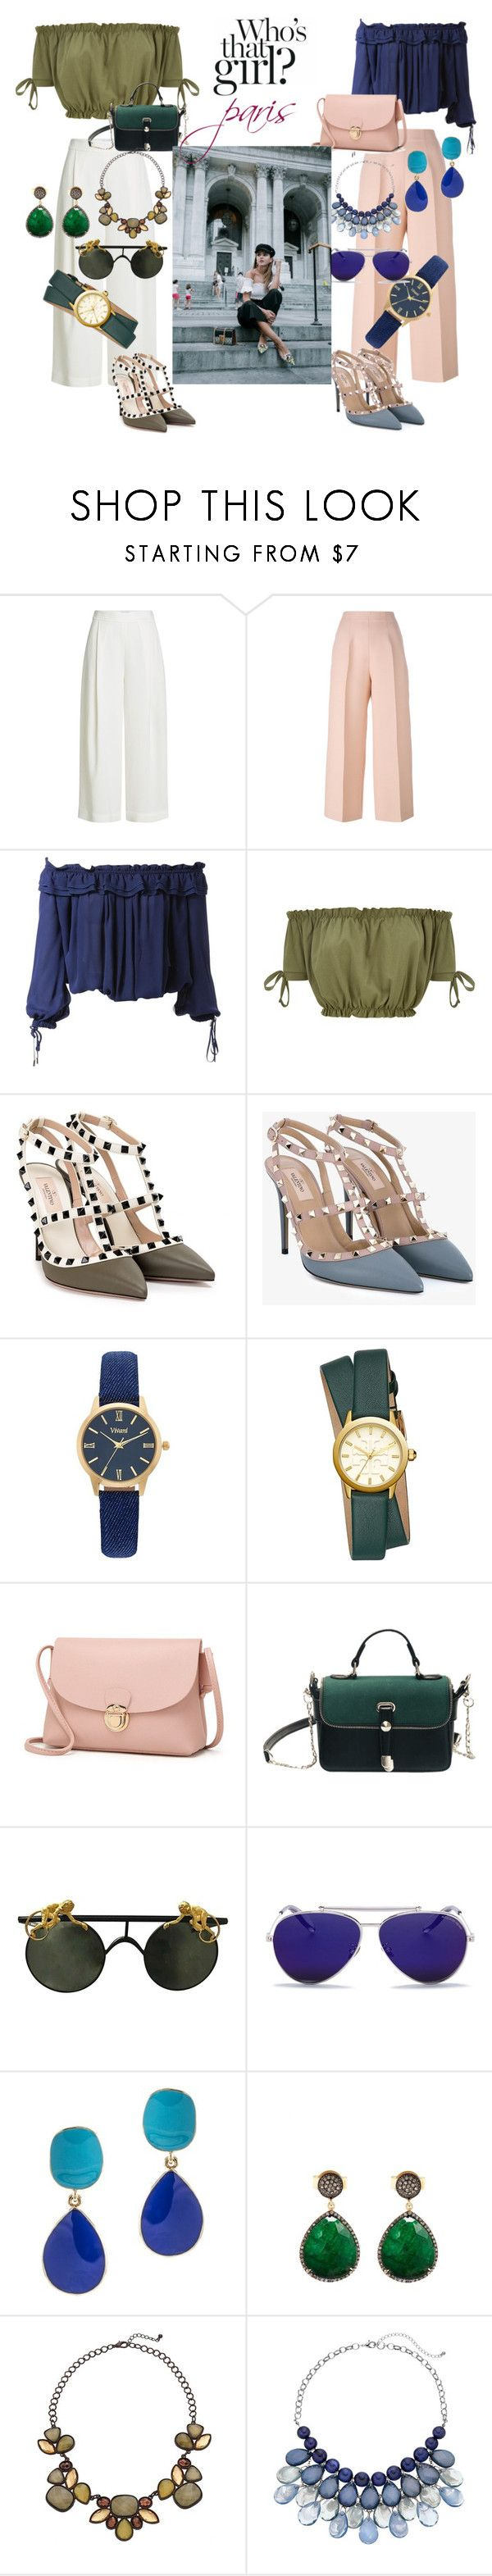 """""""me and my sis on paris"""" by karinaorengo ❤ liked on Polyvore featuring Diane Von Furstenberg, Fendi, Dsquared2, Valentino, Vivani, Tory Burch, Alexander McQueen, Kenneth Jay Lane and Liv Oliver"""